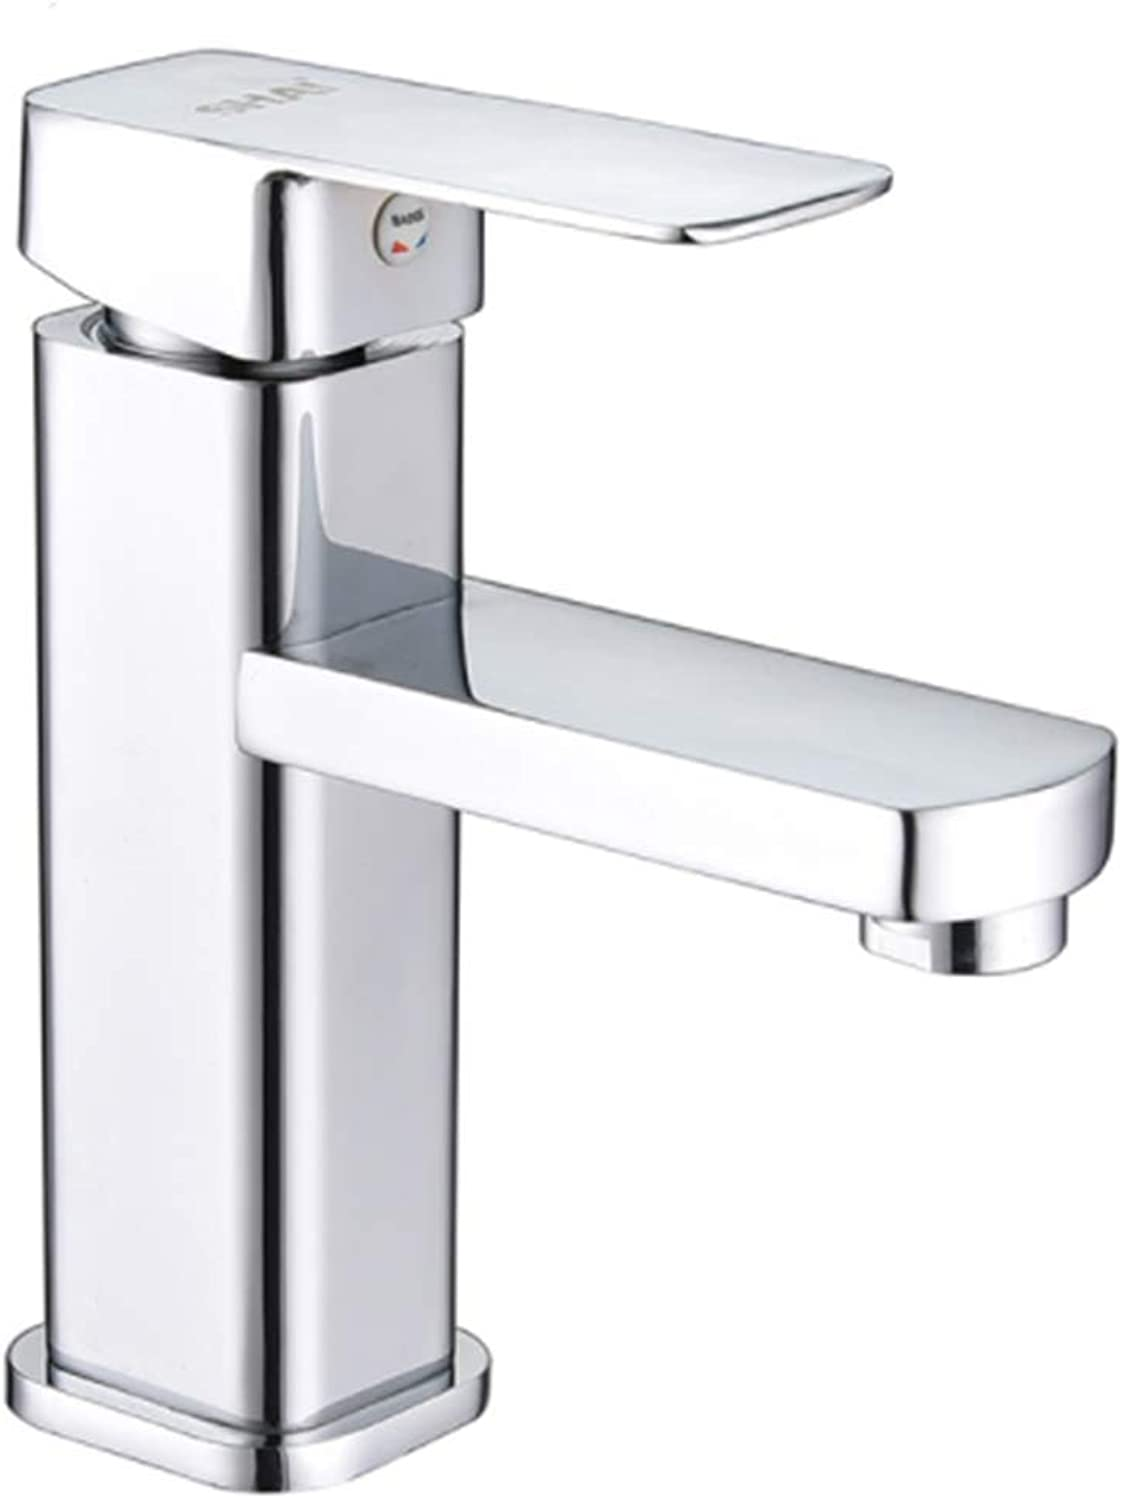 Taps Kitchen Basin Mixer Pull Out Mixerbrass Ontology Angle Bathroom Basin Faucet Brass Vessel Sink Water Tap Single Handle Faucet Chrome Finish Faucet